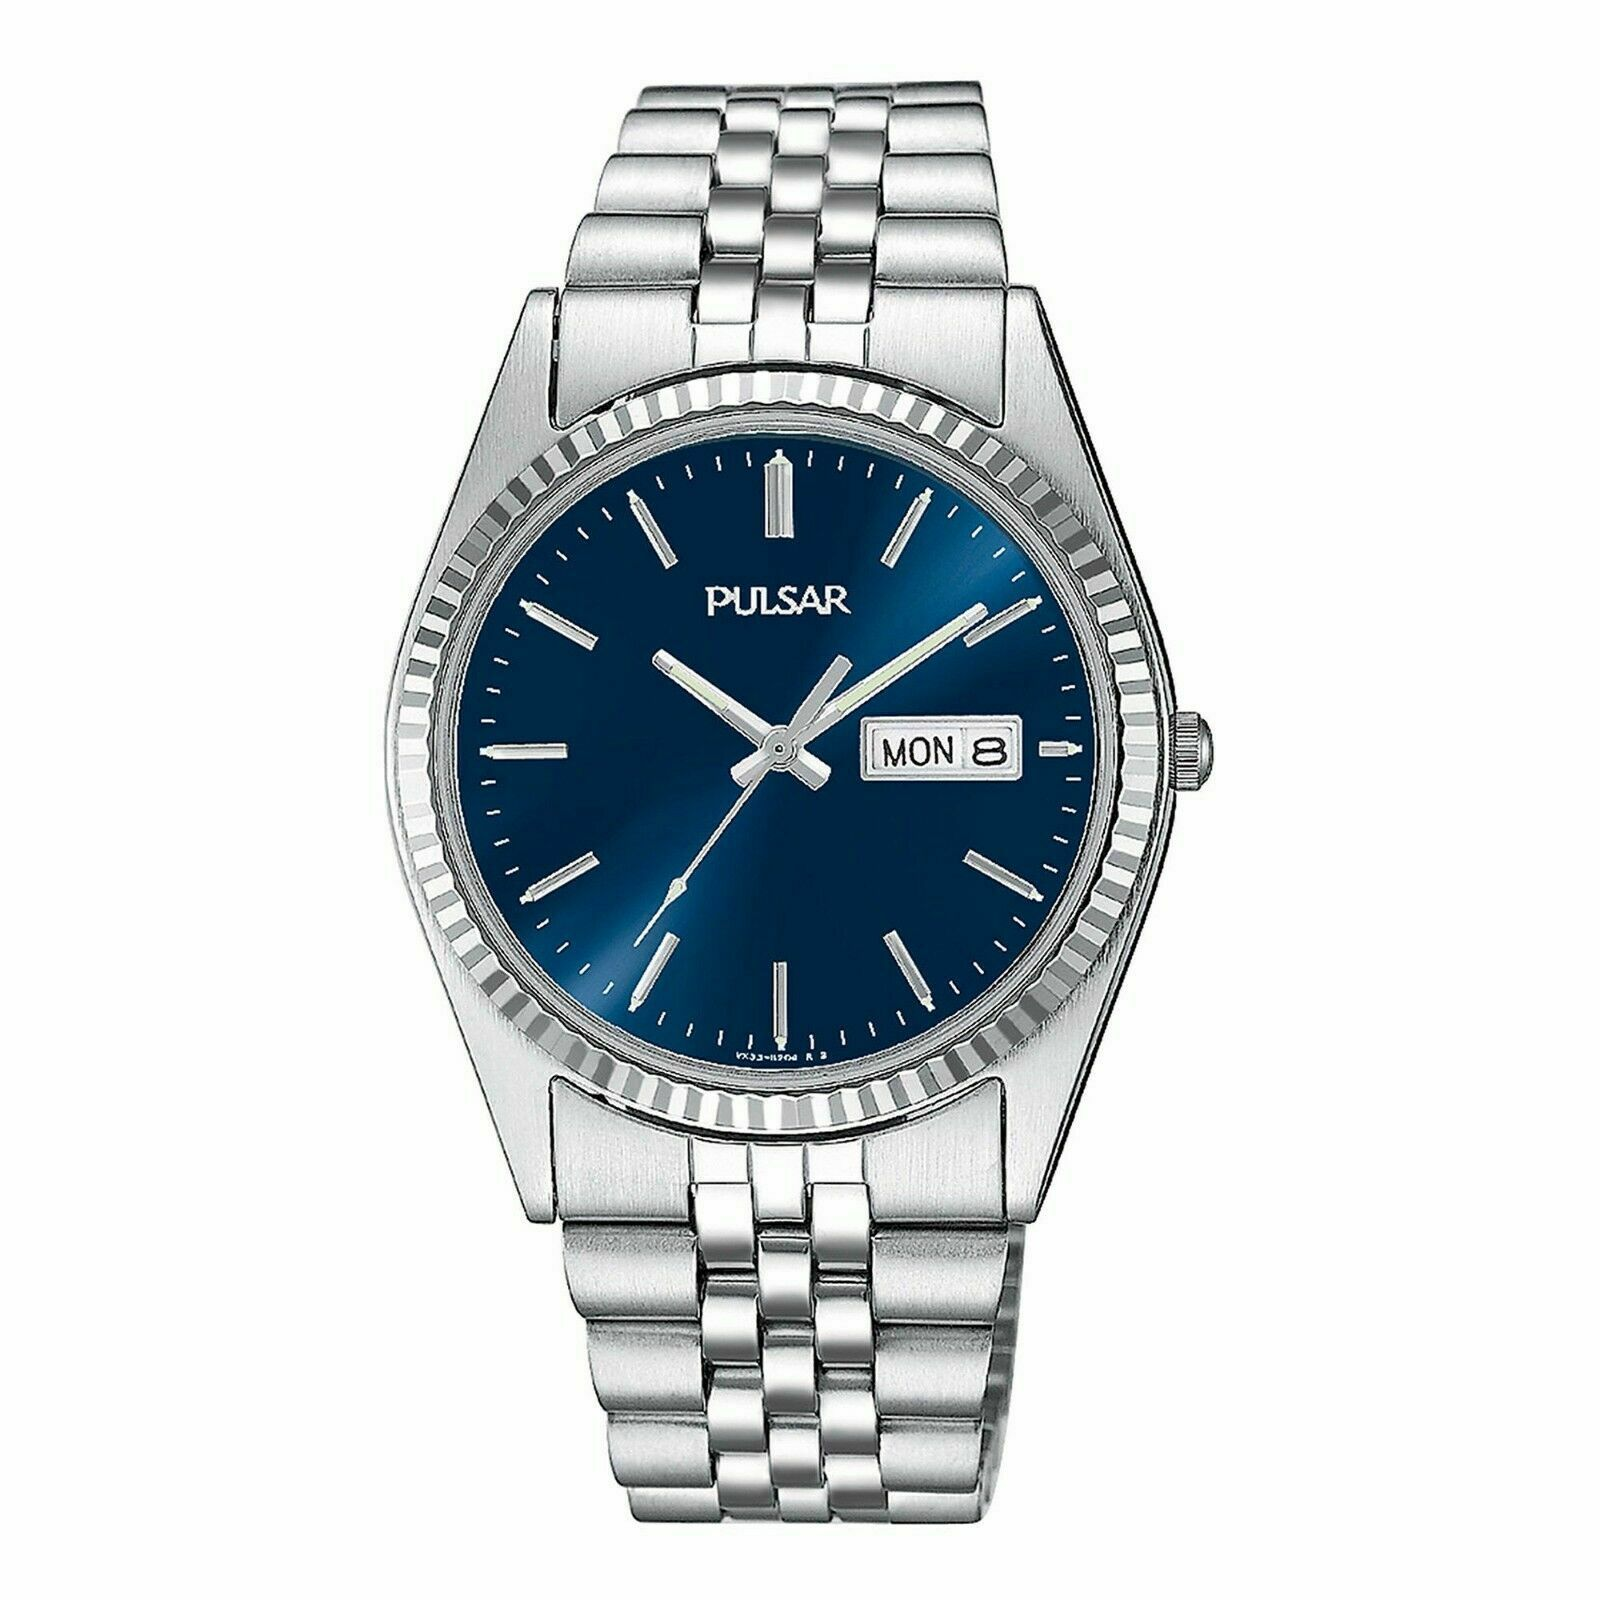 Pulsar by Seiko PXF277 Genuine Japan Seiko Movement Blue Face Coin Bezel Rolex Datejust Style Homage Wrist Watch